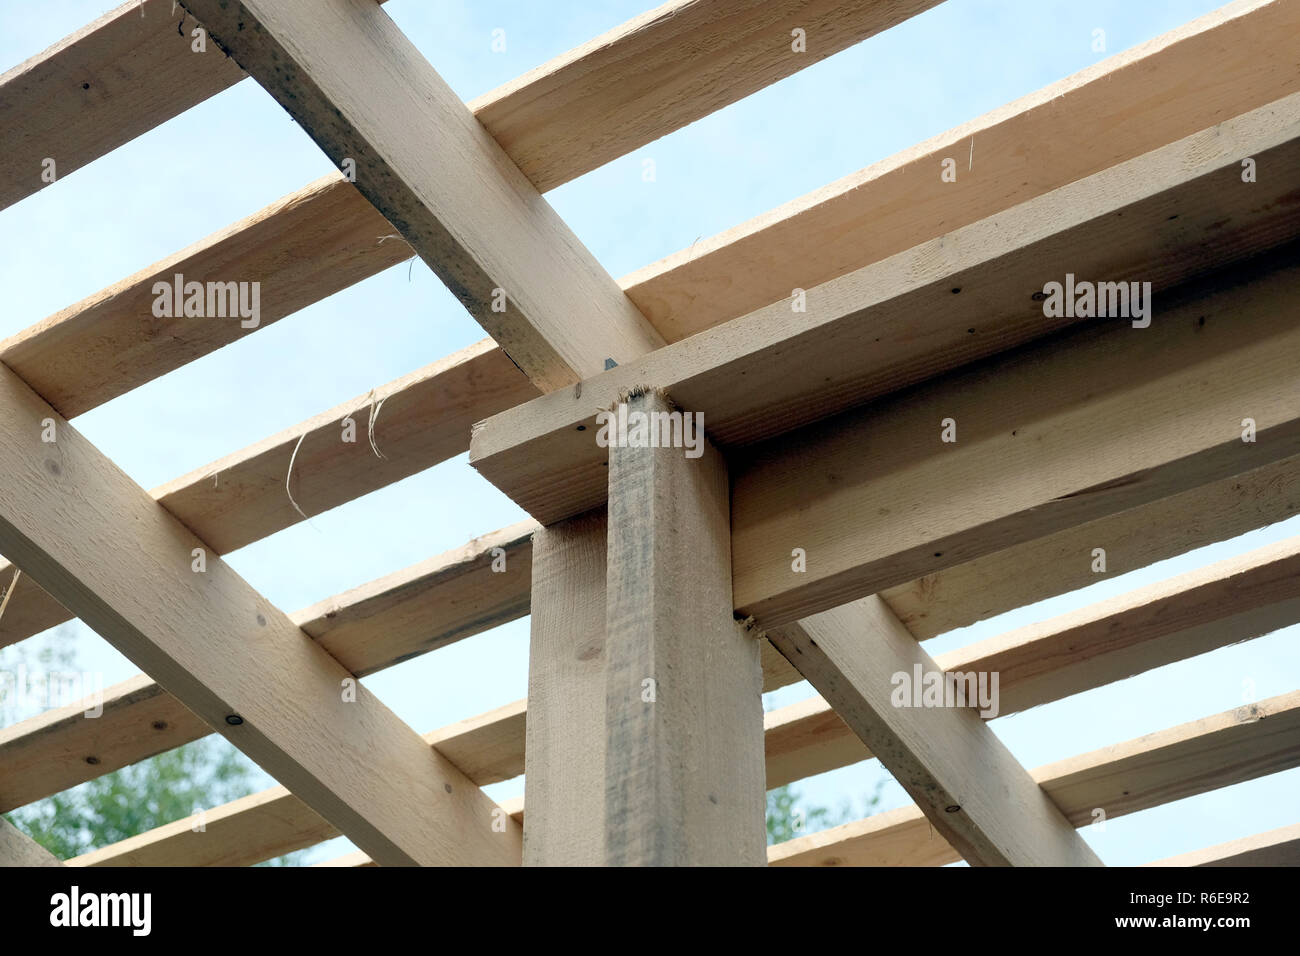 Roof lathing mounting inside house. Wooden country house construction - Stock Image